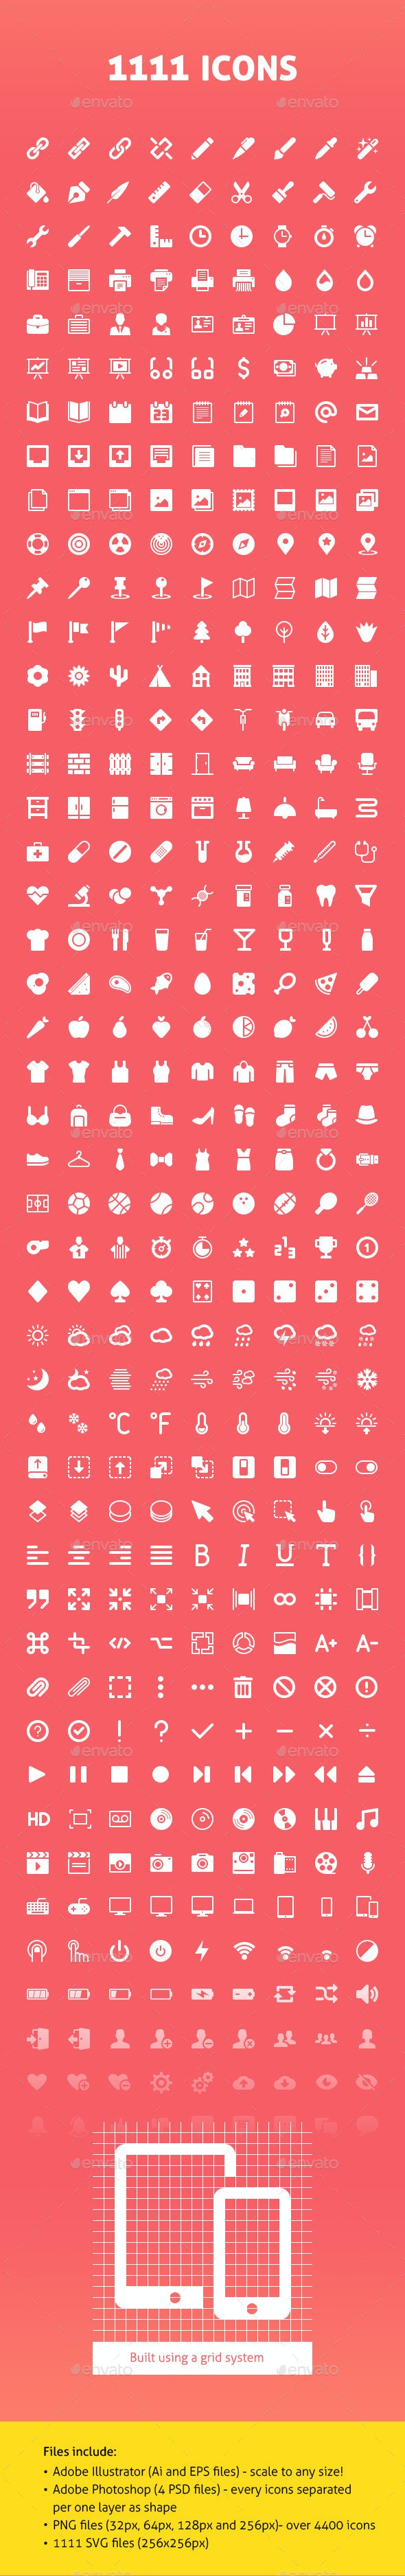 1111 Vector Icons - Web Icons